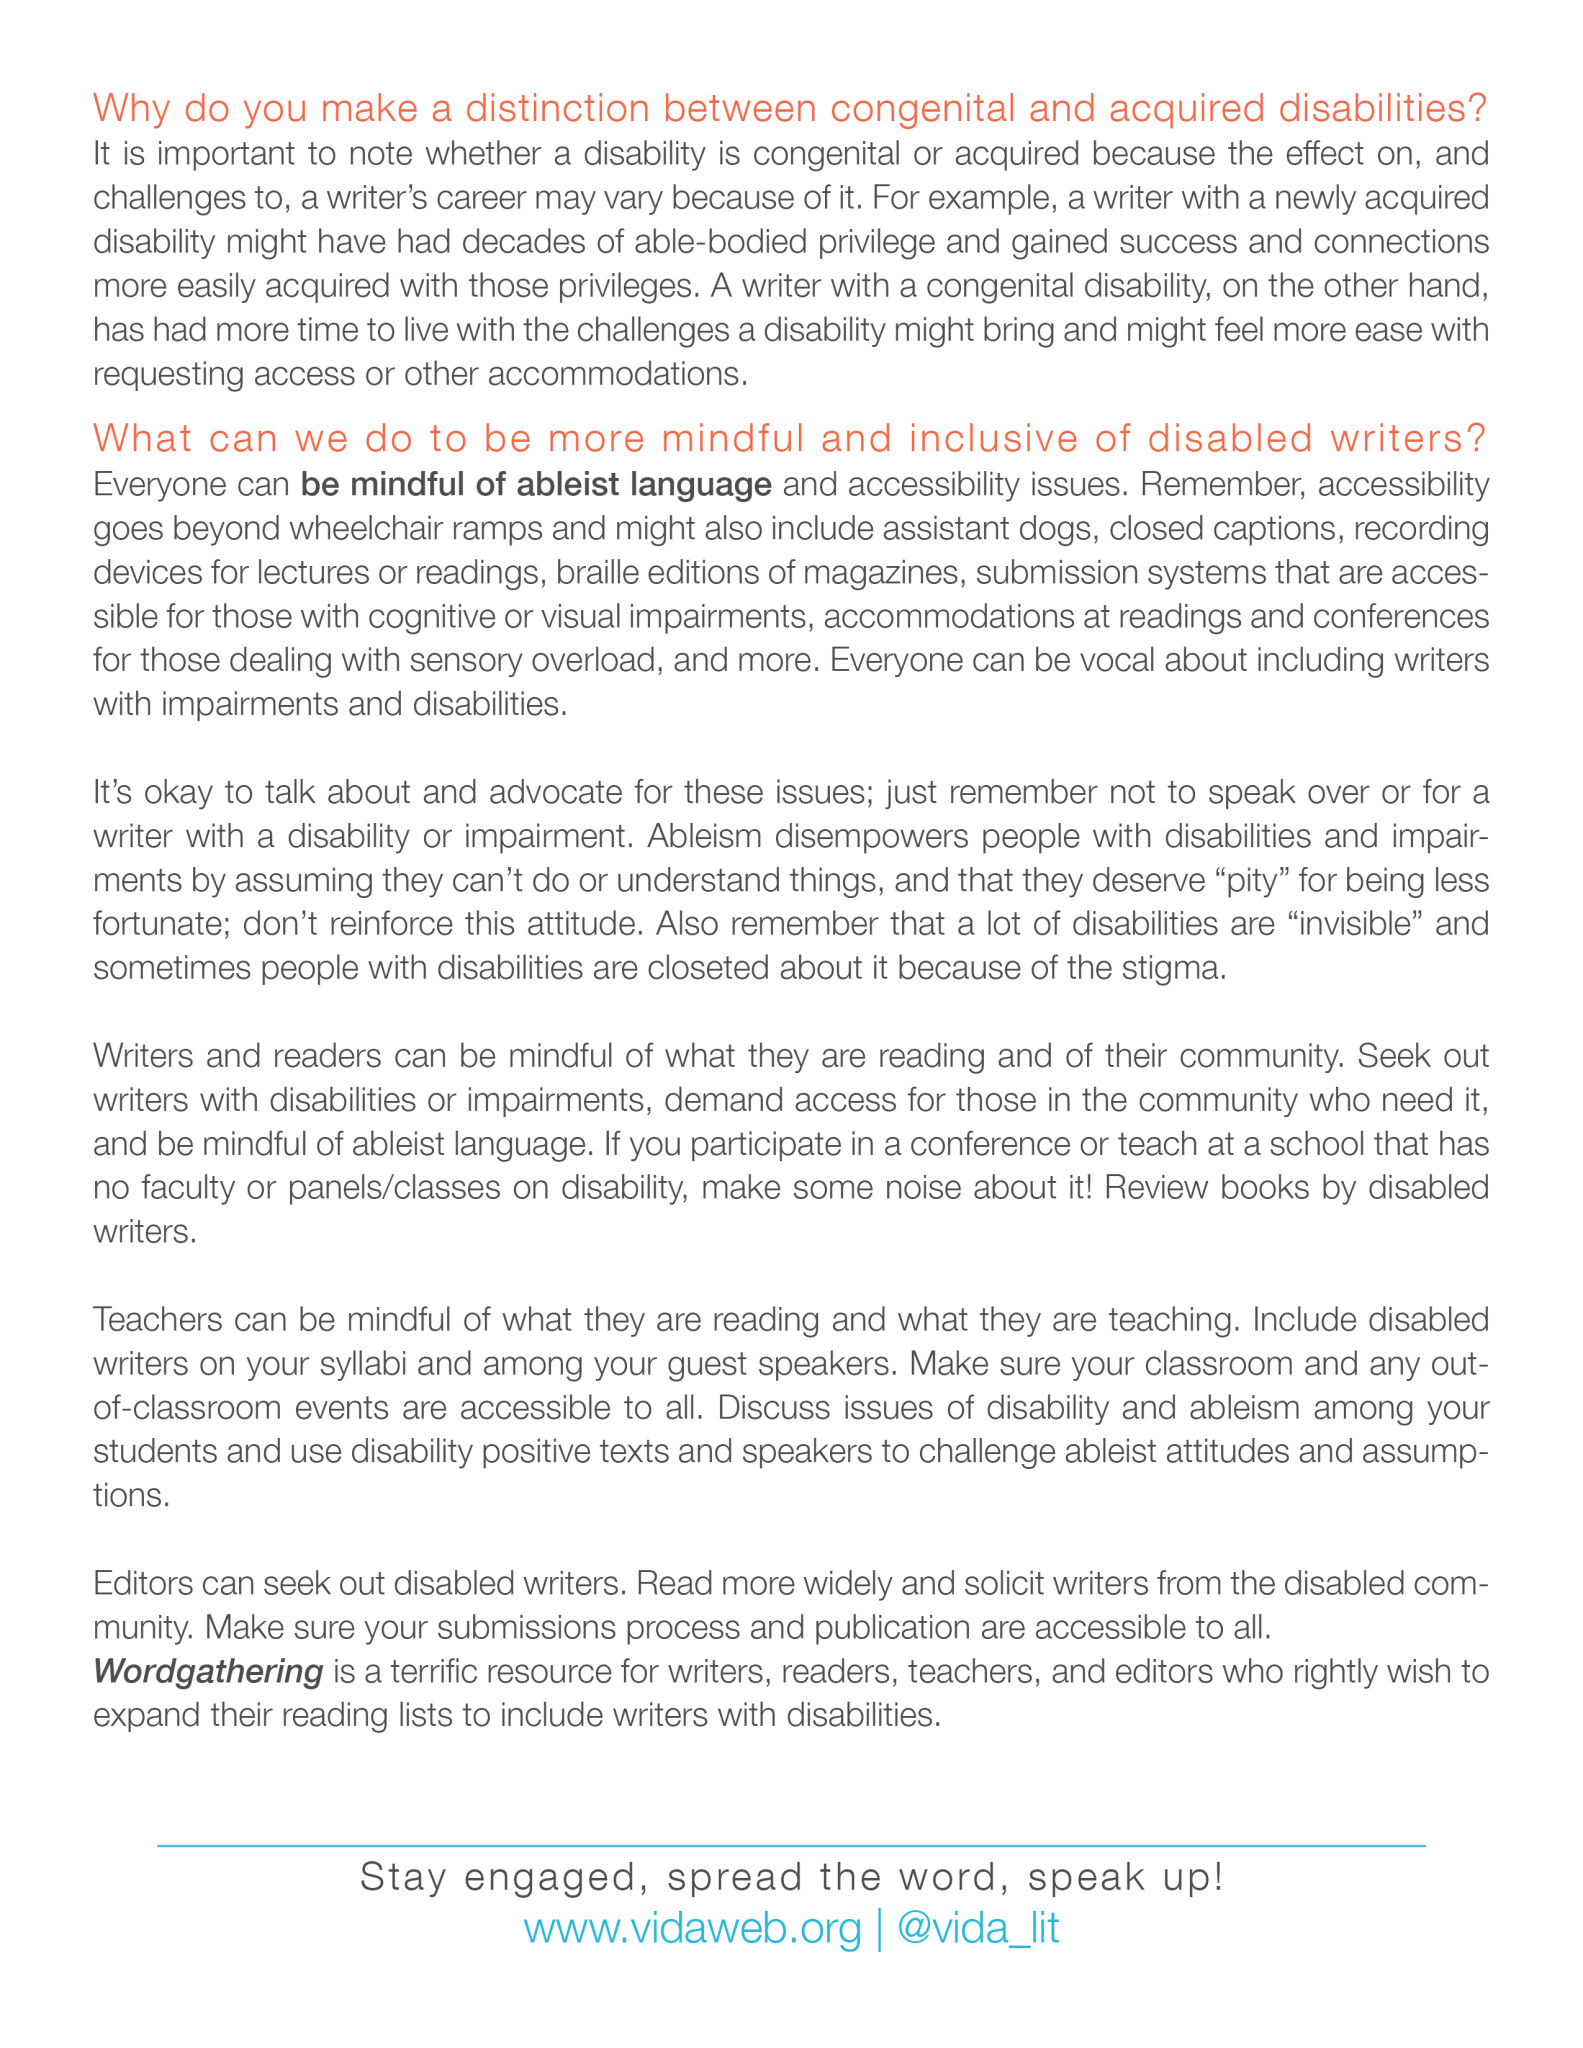 The Best American Essays 2013 Robert Atwan Cheryl